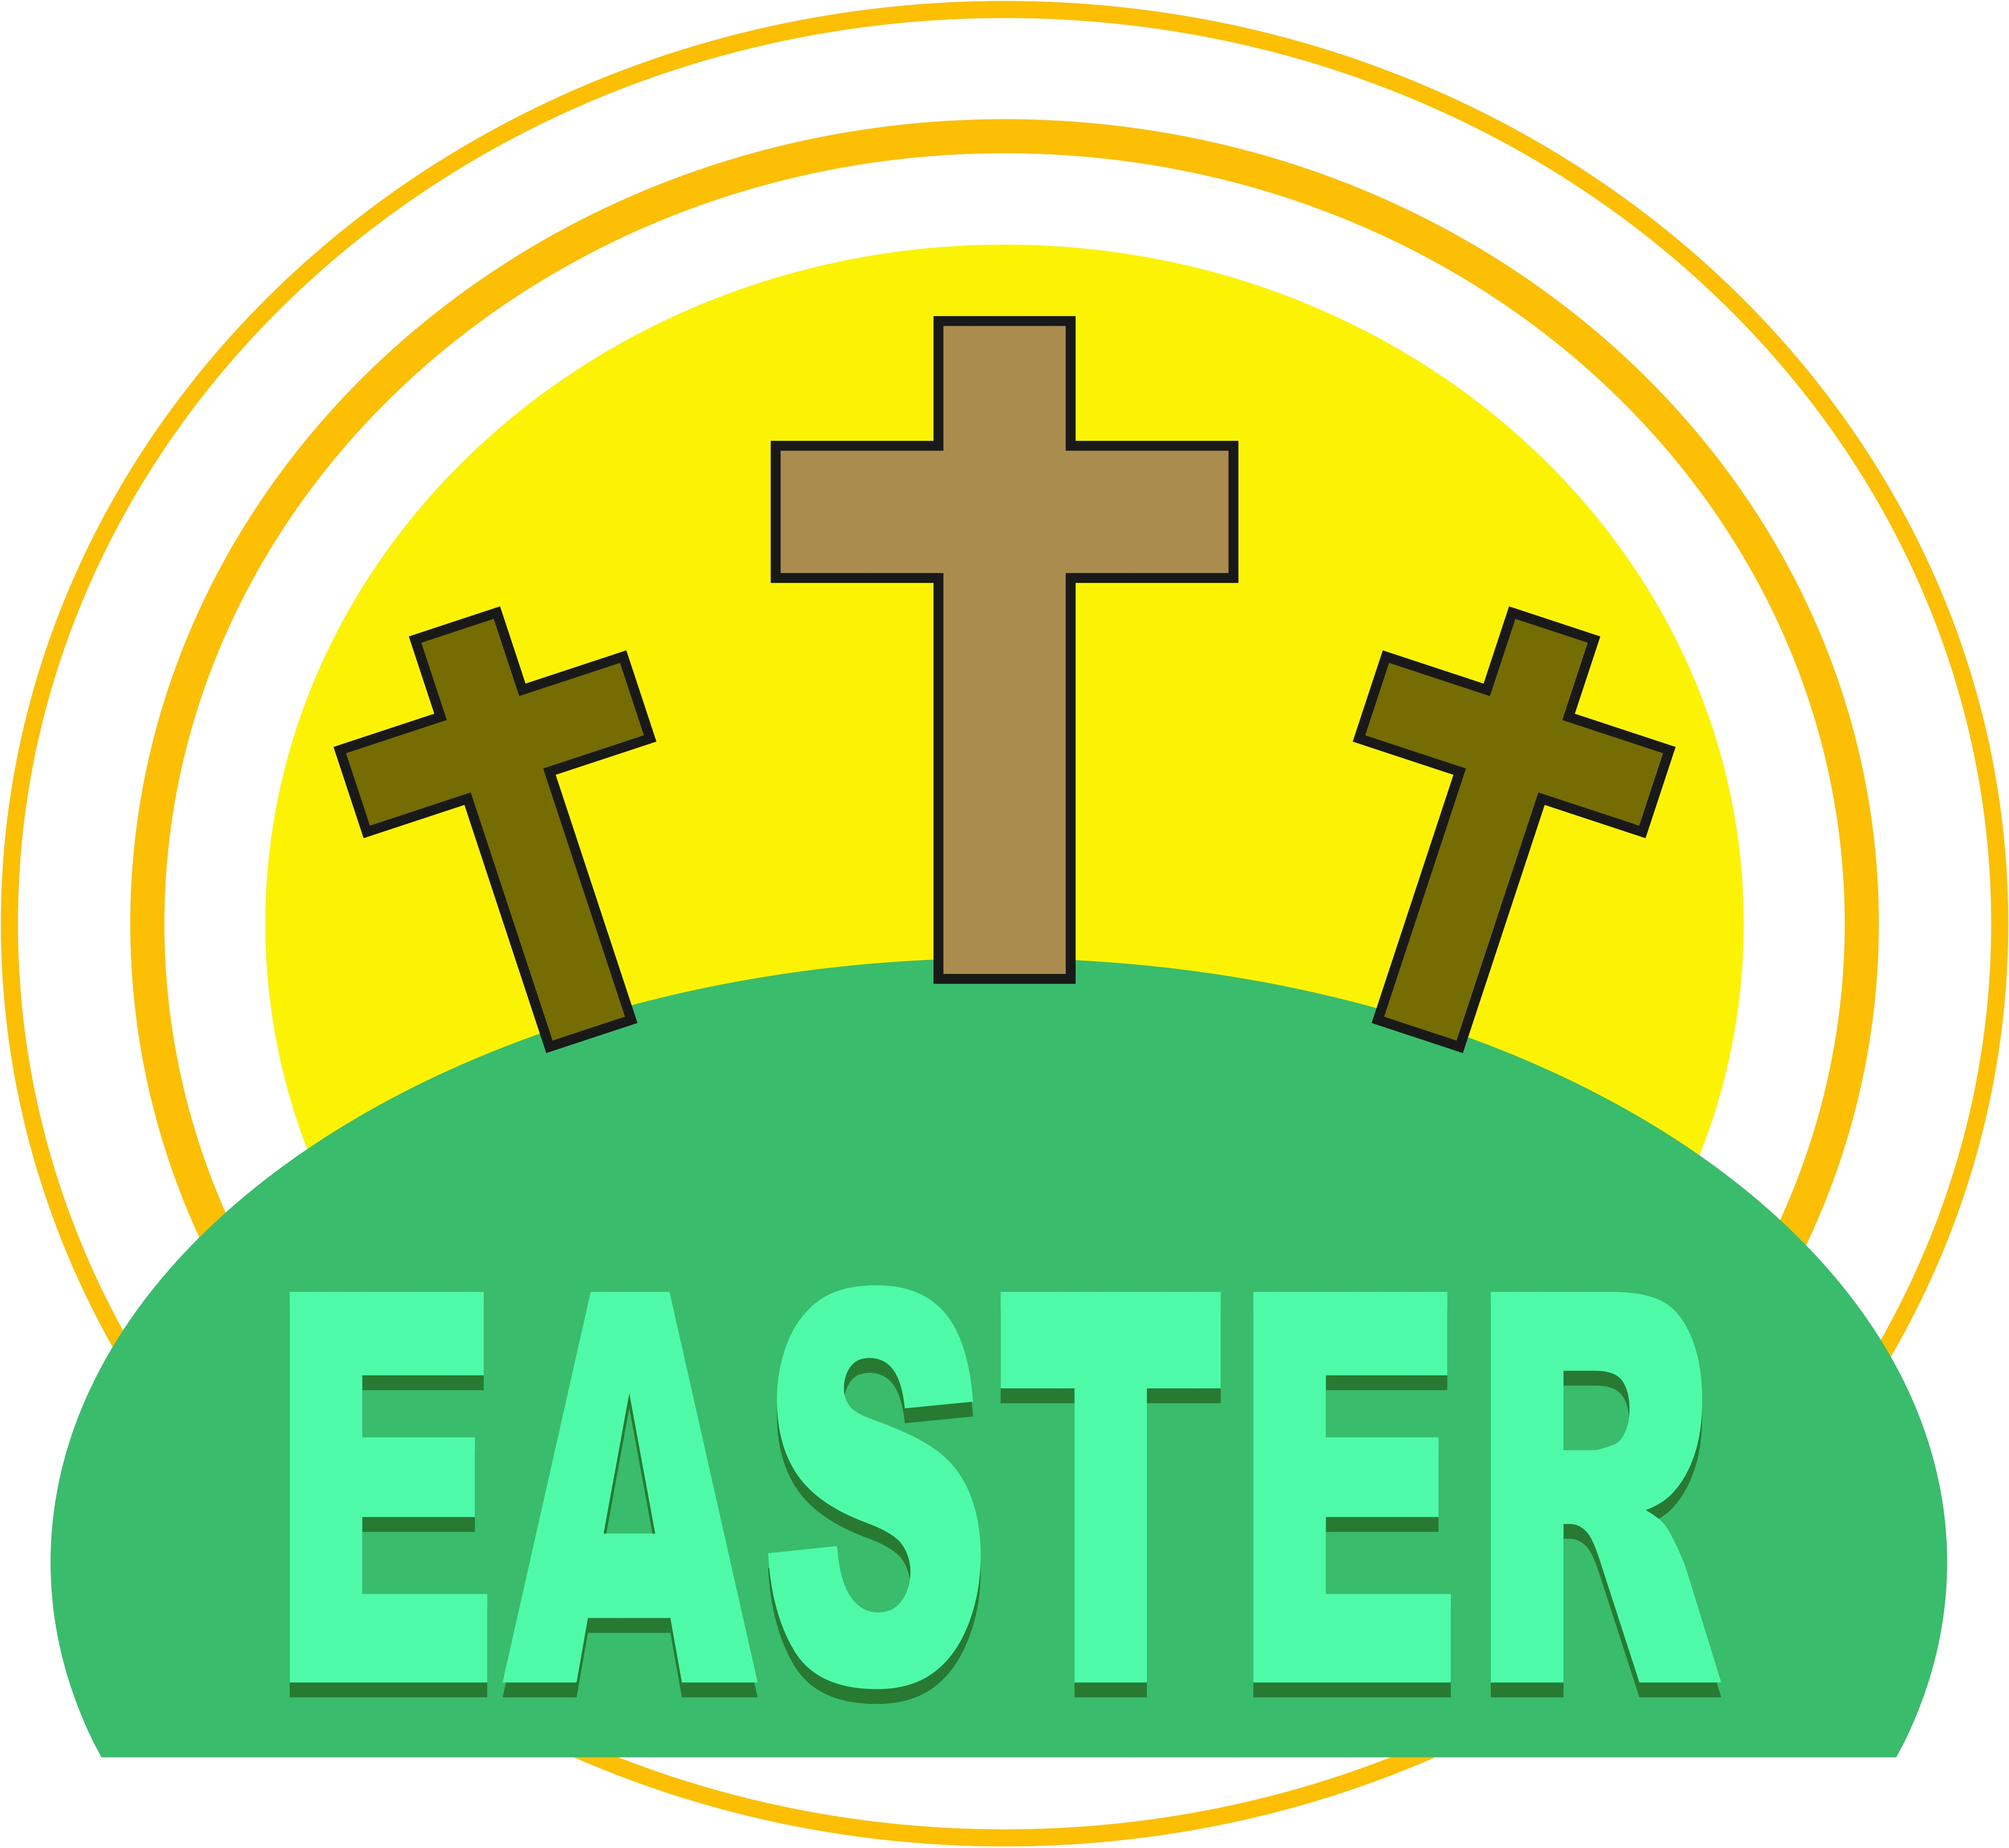 Easter Calvary | Free Images at Clker.com - vector clip ...Easter Clipart Free